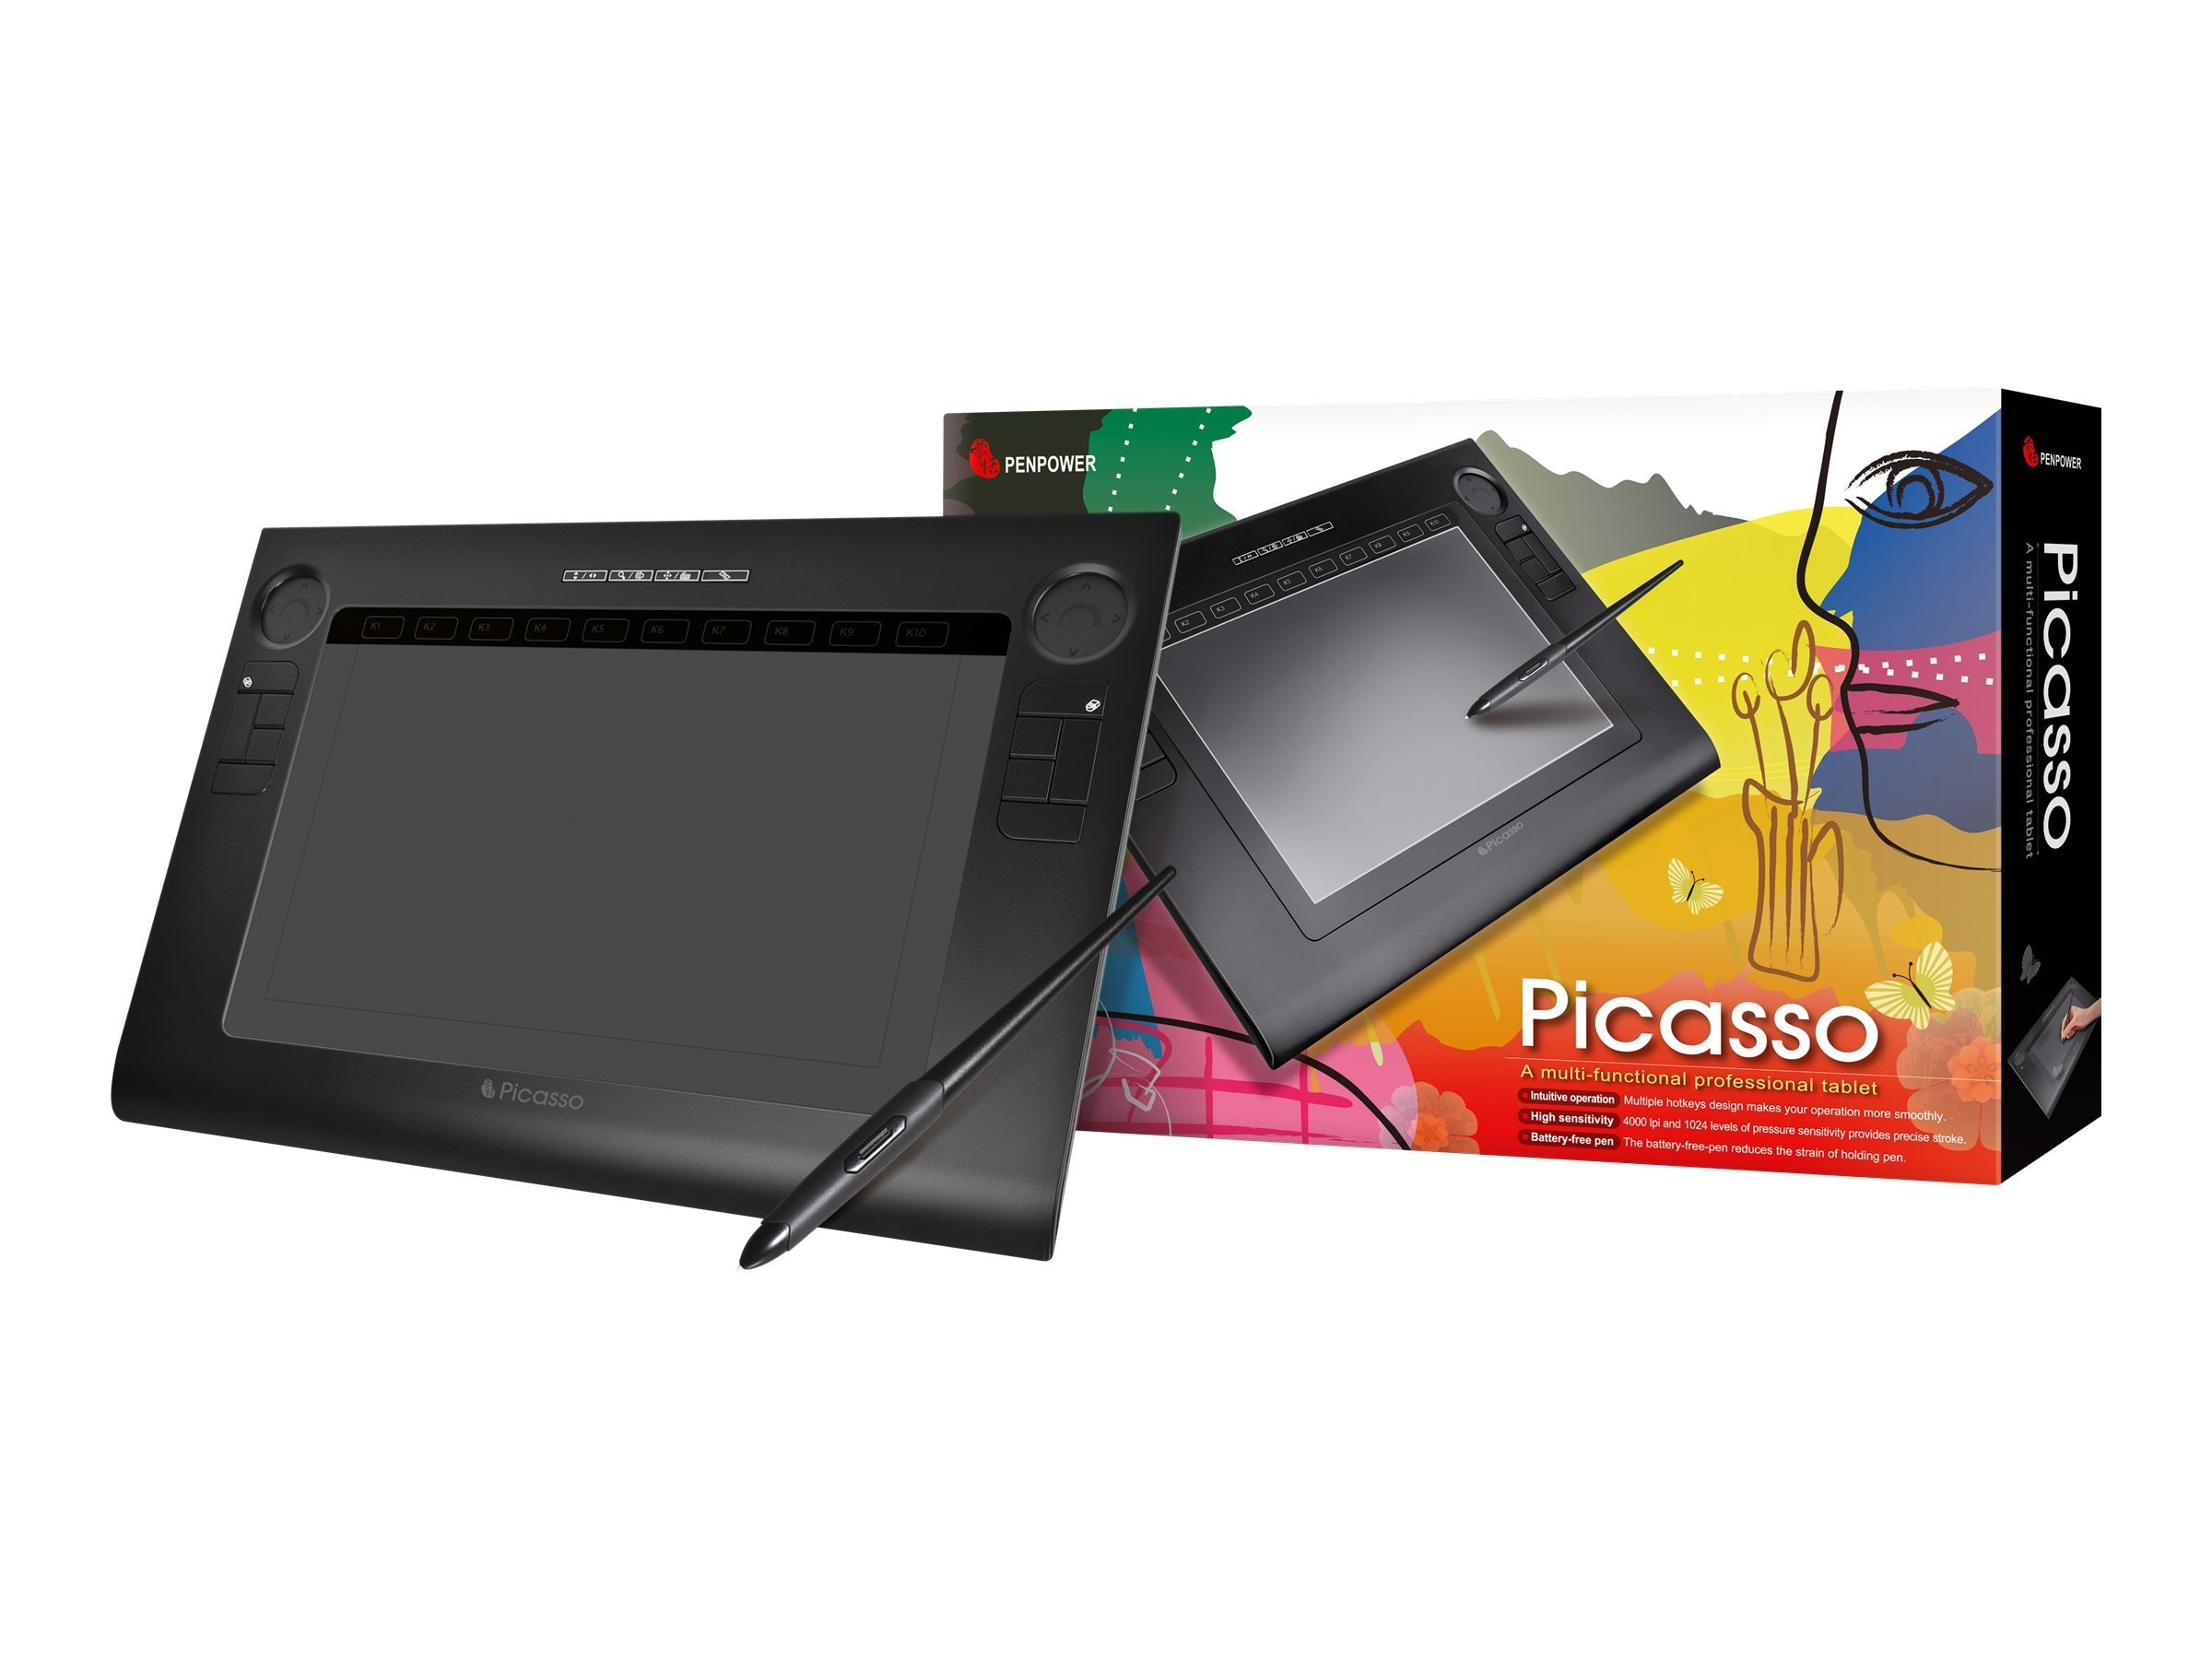 Penpower Picasso Digitizer Tablet 10 x 6 Wired USB